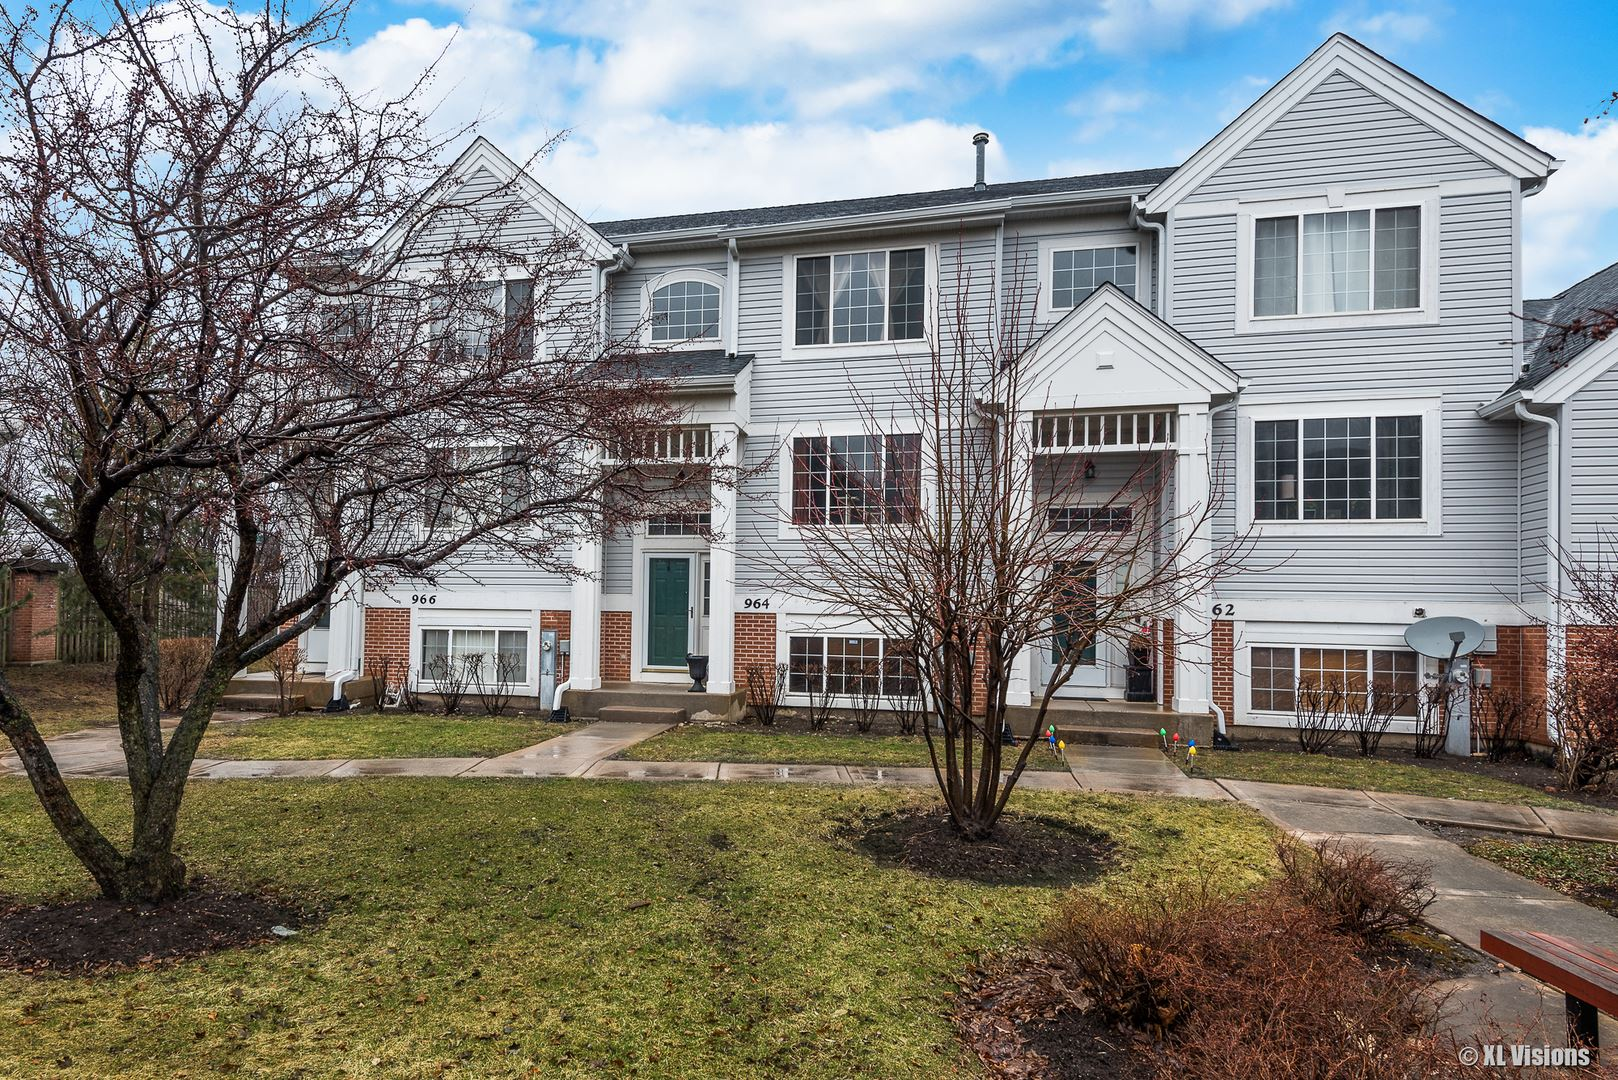 964 Mayfair Court, Elk Grove Village, IL 60007 - #: 10664508